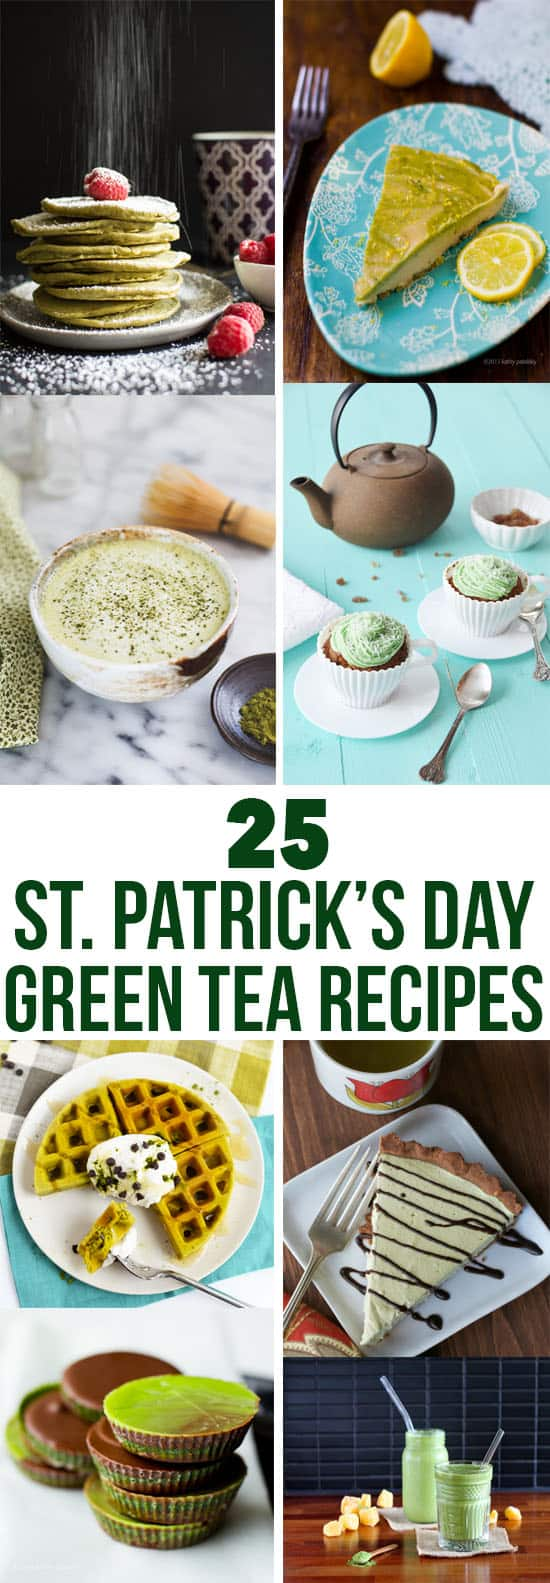 25 St. Patrick's Day Green Tea Recipes | healthynibblesandbits.com